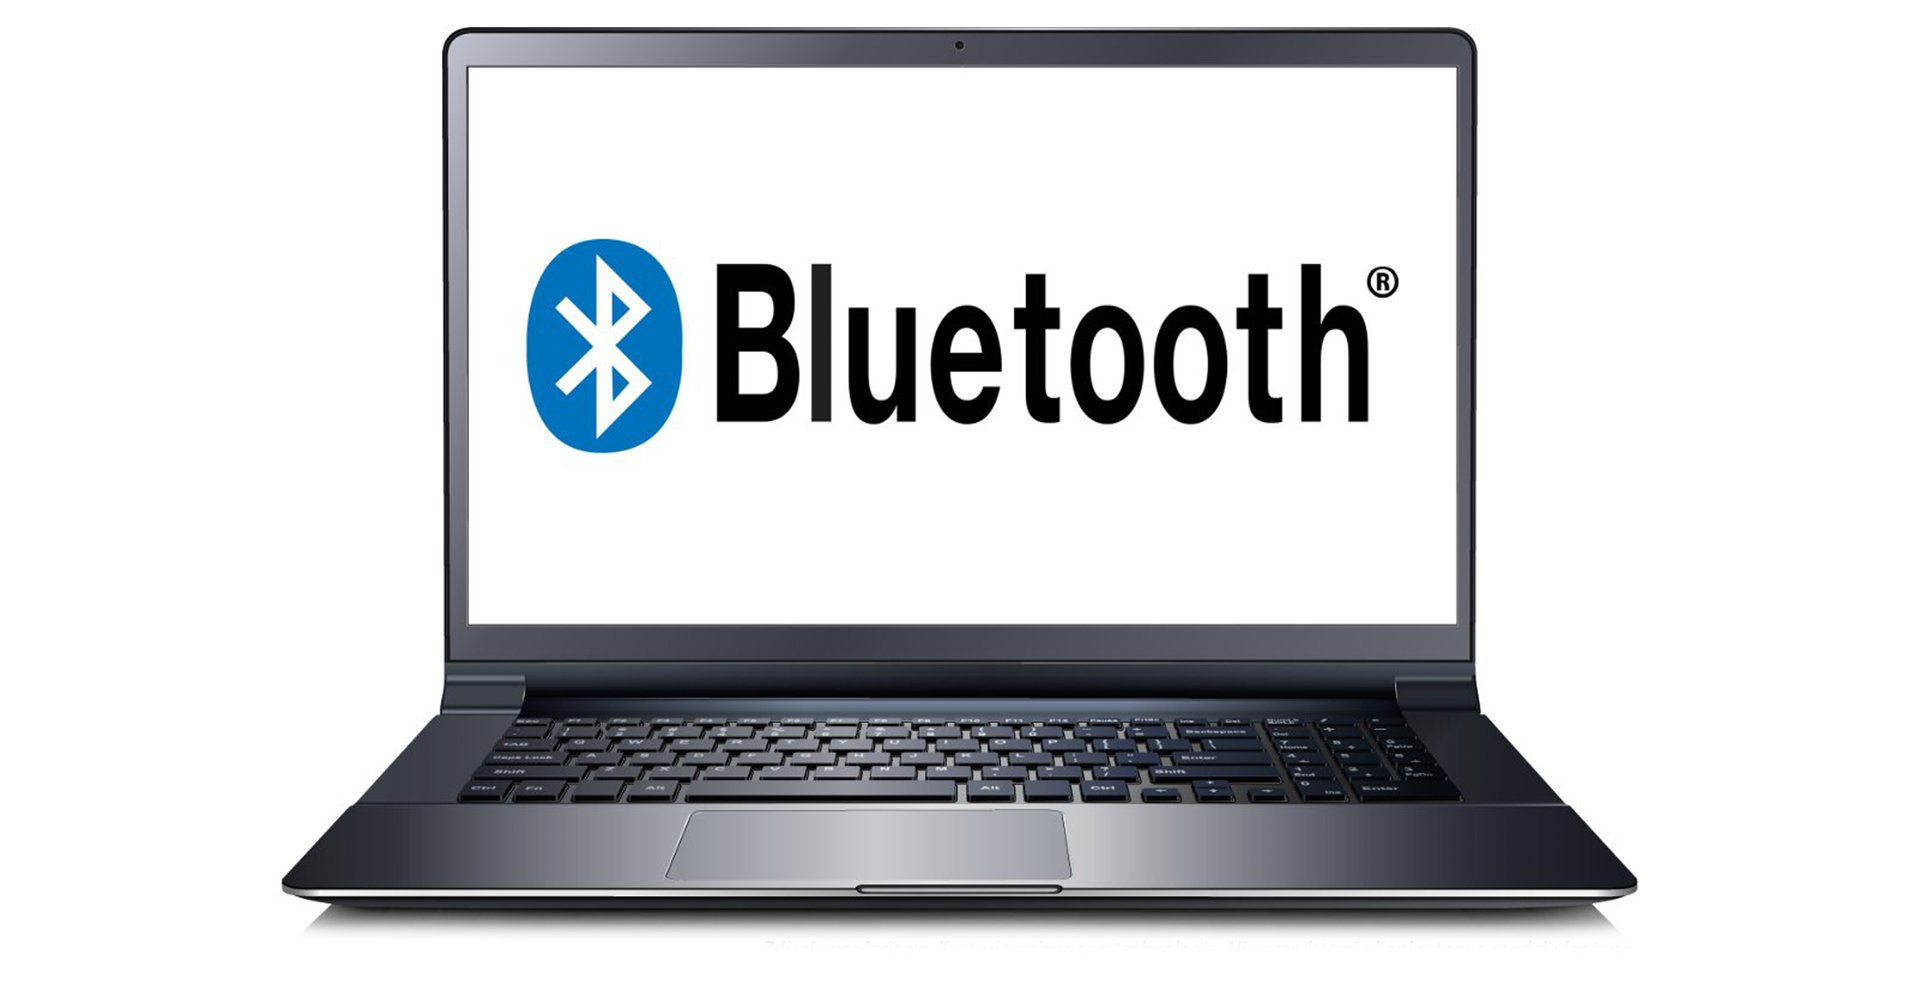 Dell Latitude E6420 i5-2520M 8GB 240SSD WIN7Pro                             Bluetooth